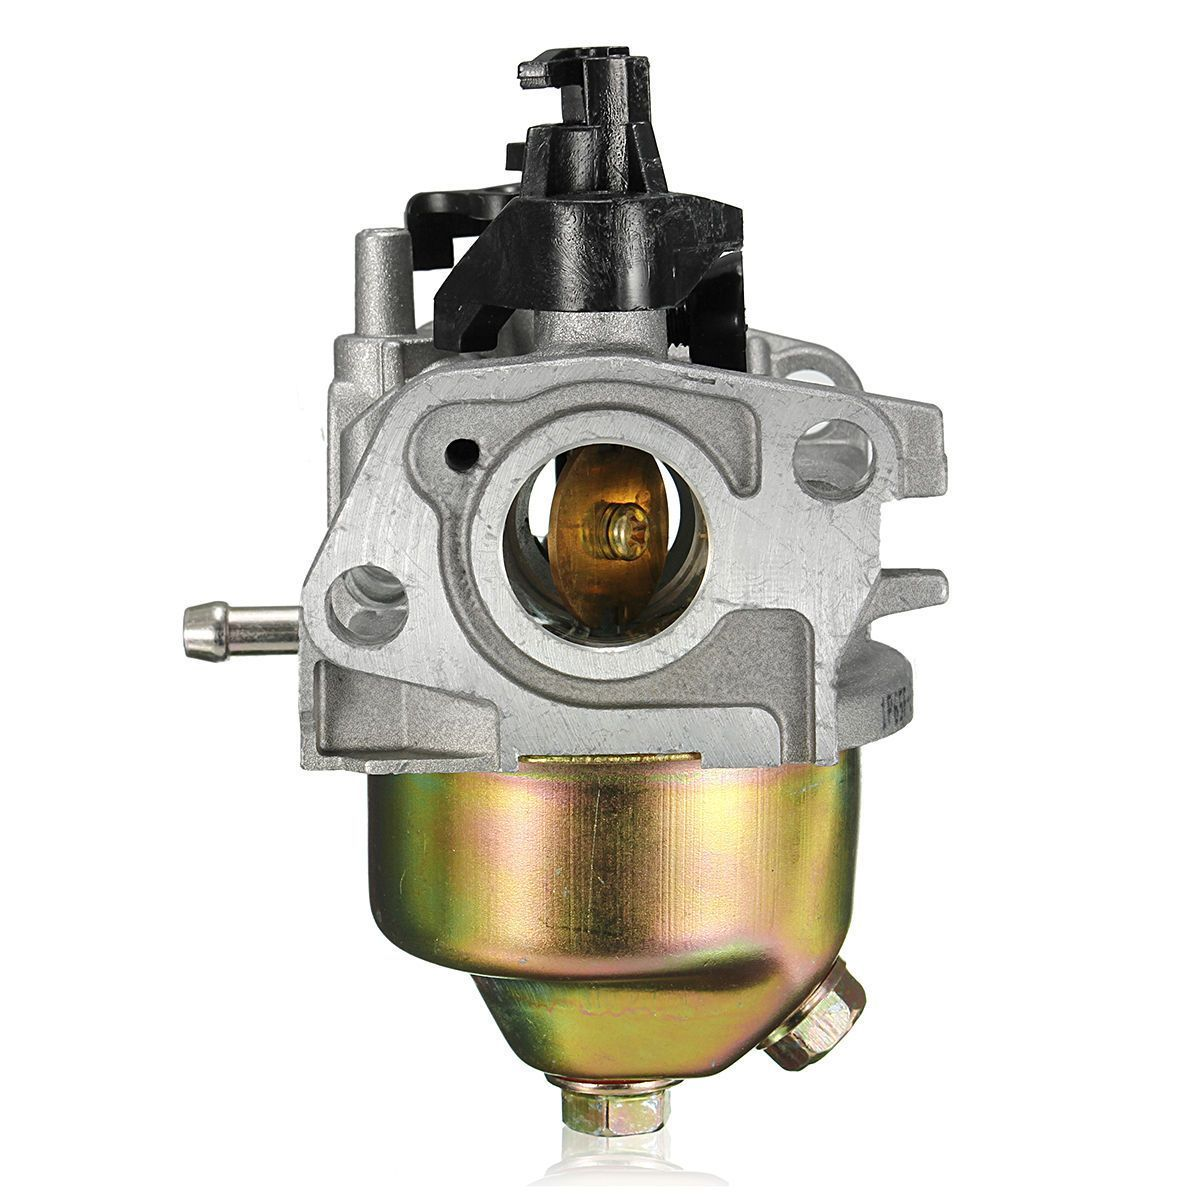 Carburetor For MTD Pro 12A-26MY196 12A-26MY145 12A-26MY016 Lawn Mowers